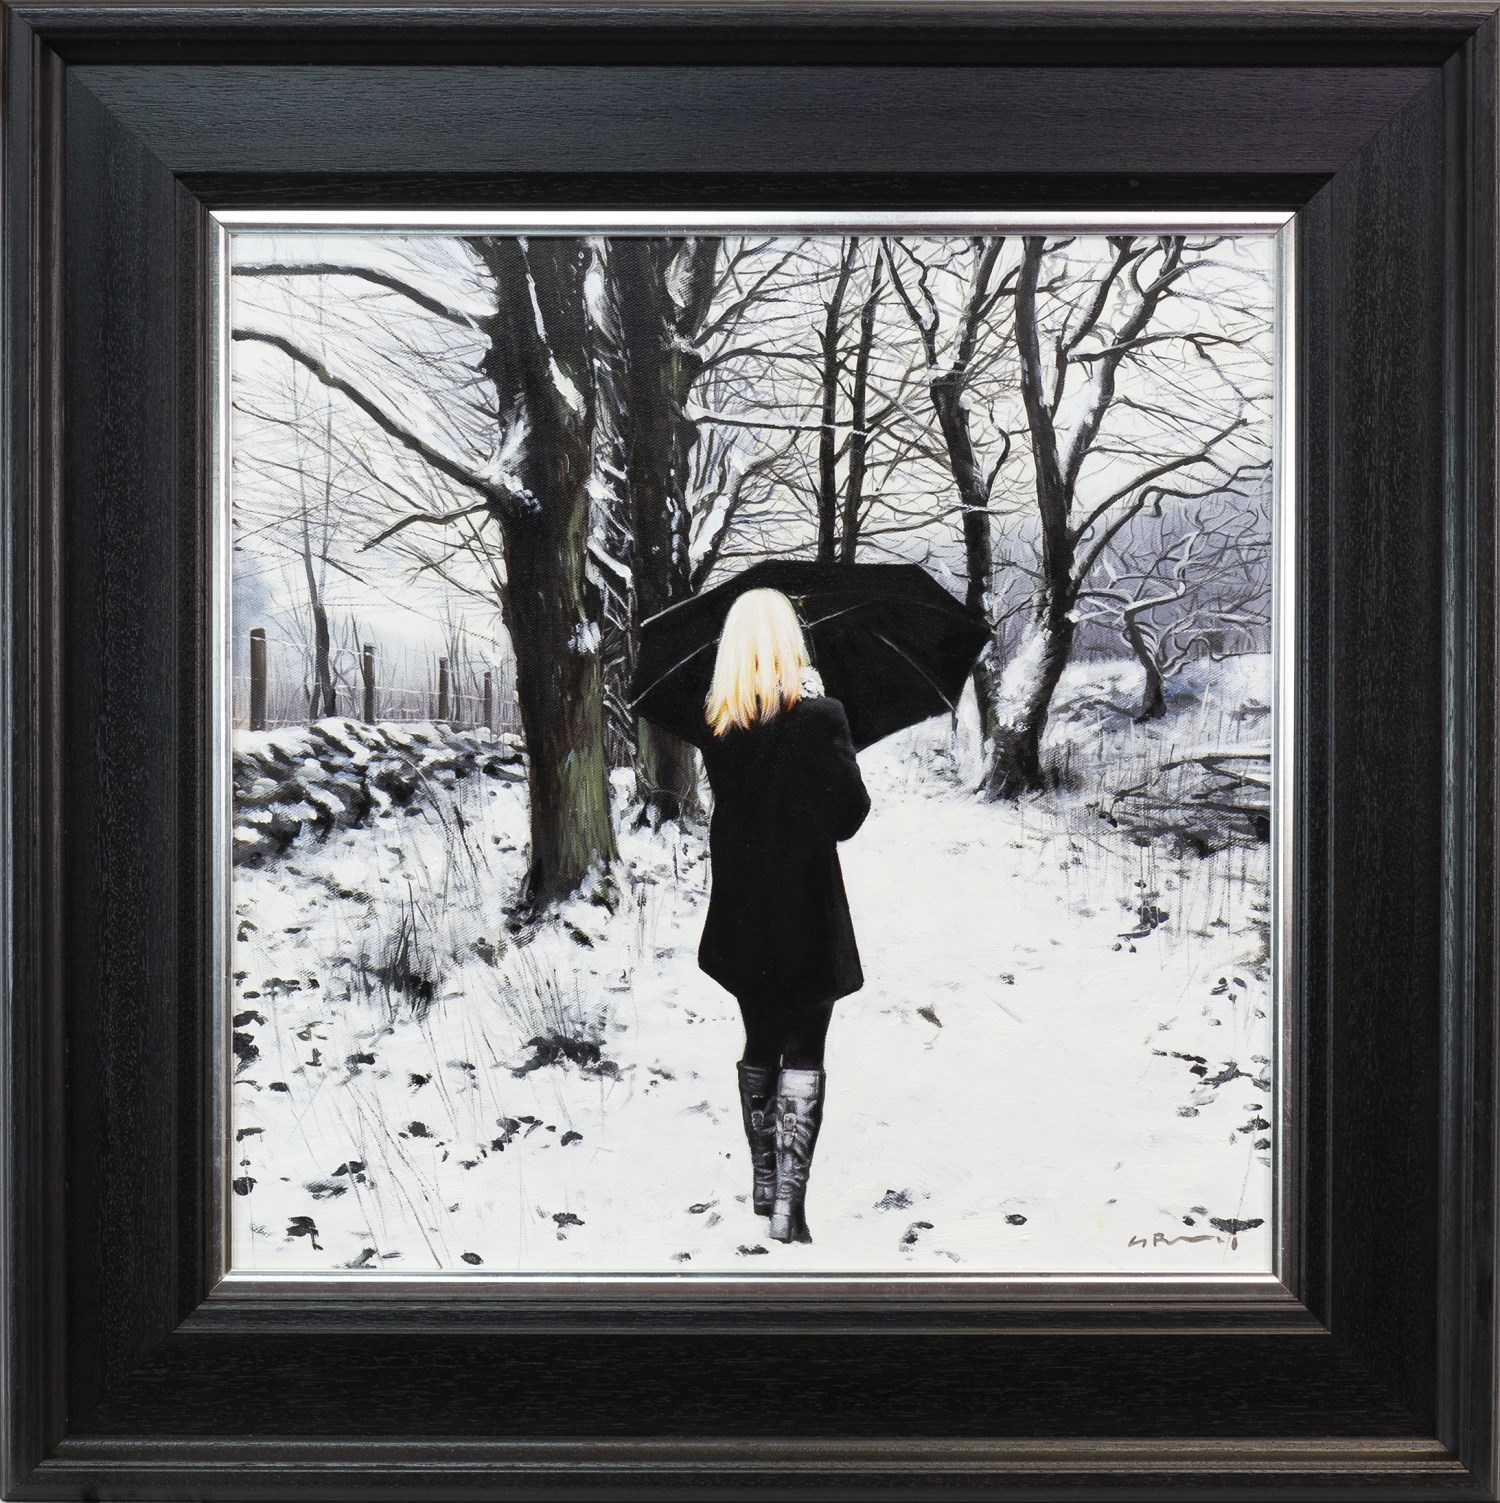 Lot 48 - BLACK COAT IN WINTER, AN OIL ON CANVAS BY GERARD BURNS